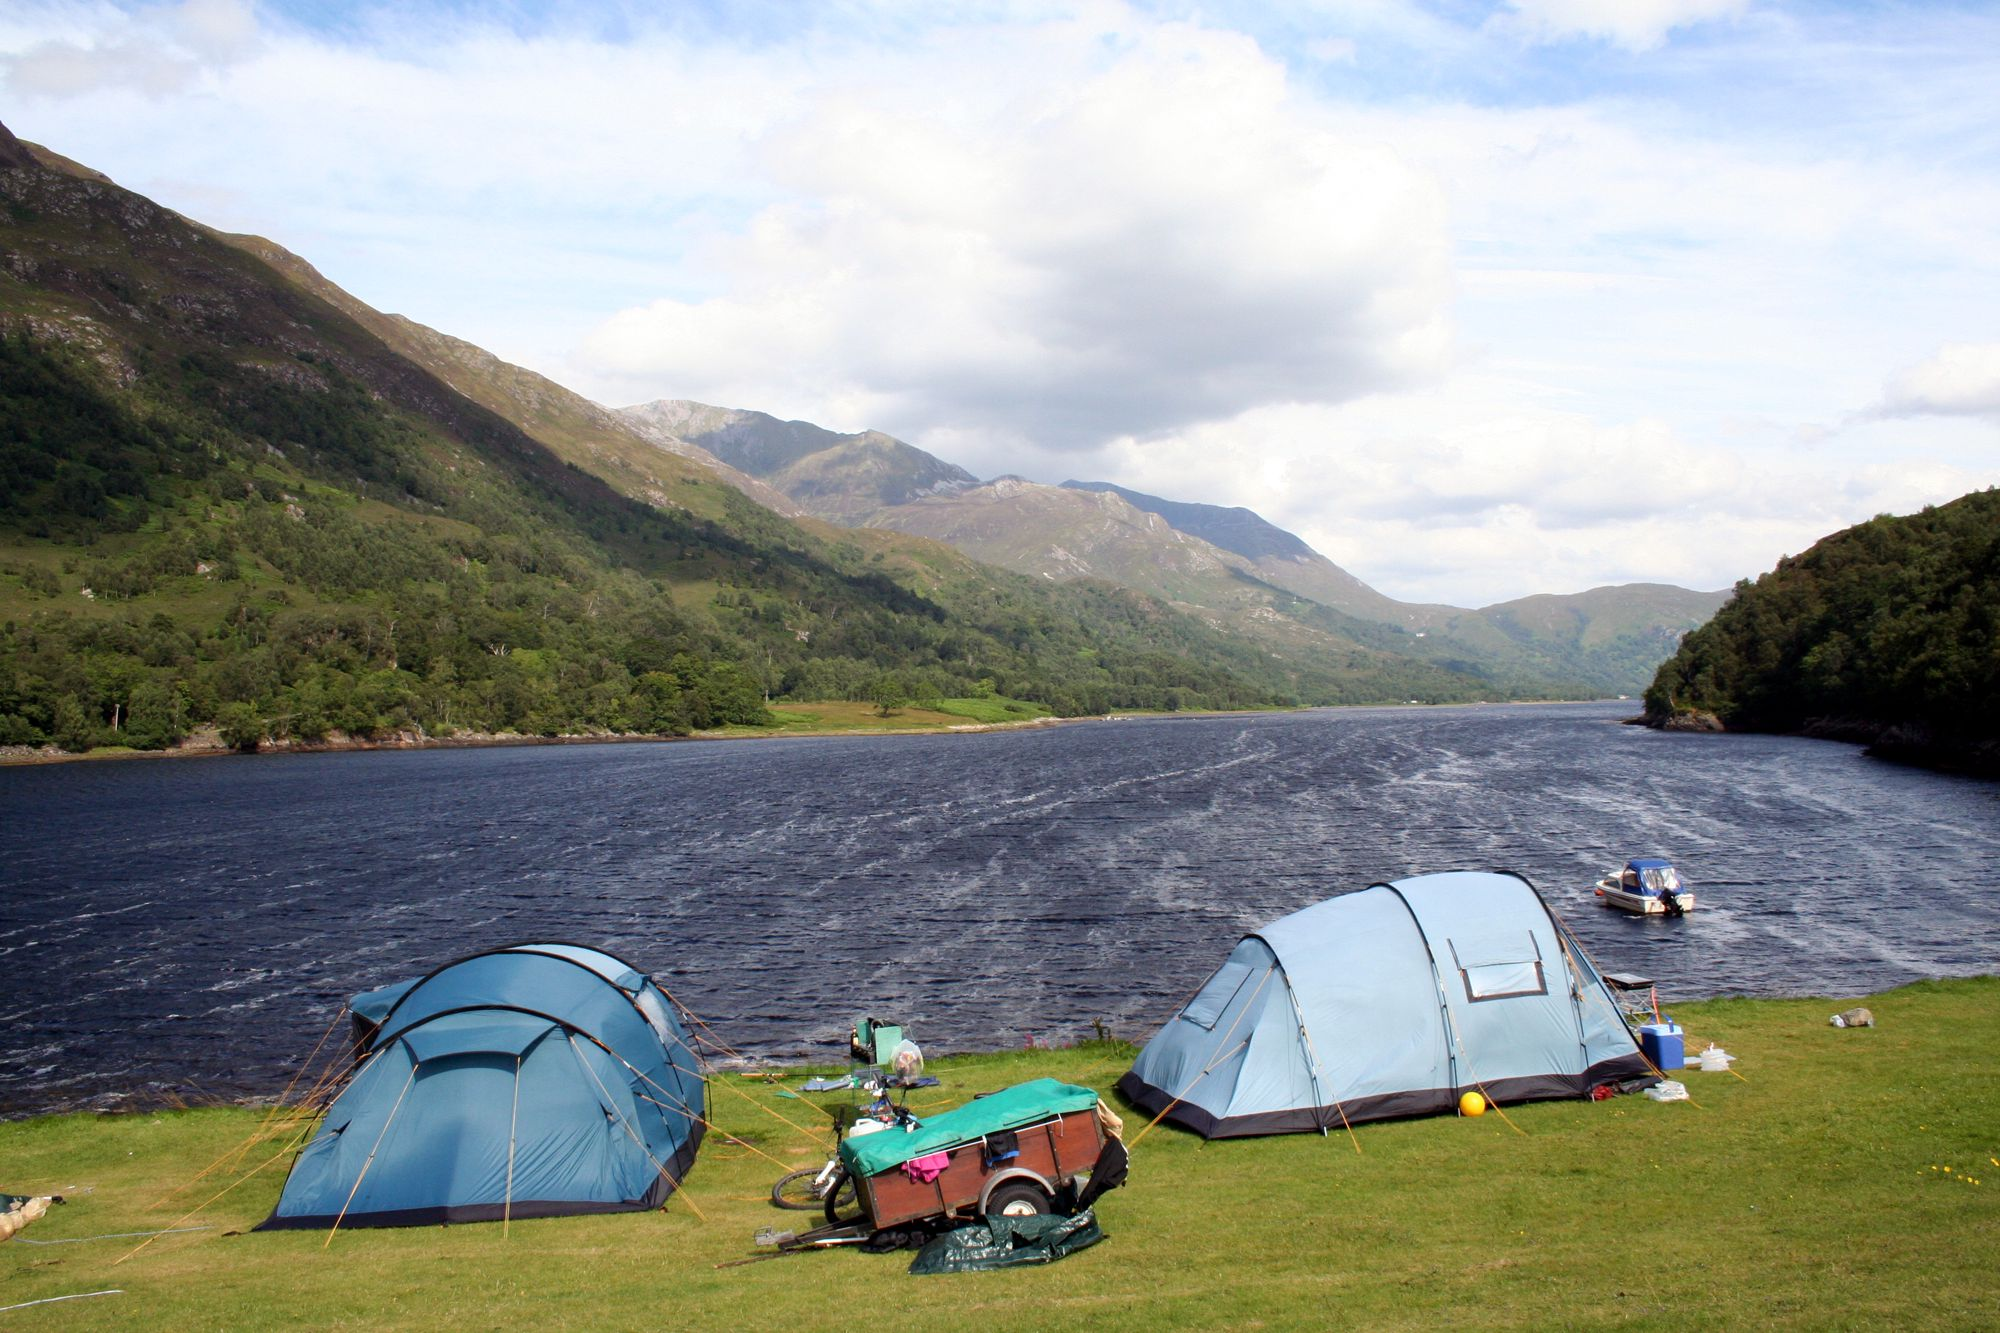 A little hidden lochside haven with some of the best scenery in Europe and yet still in close proximity to the ever needed creature comforts.